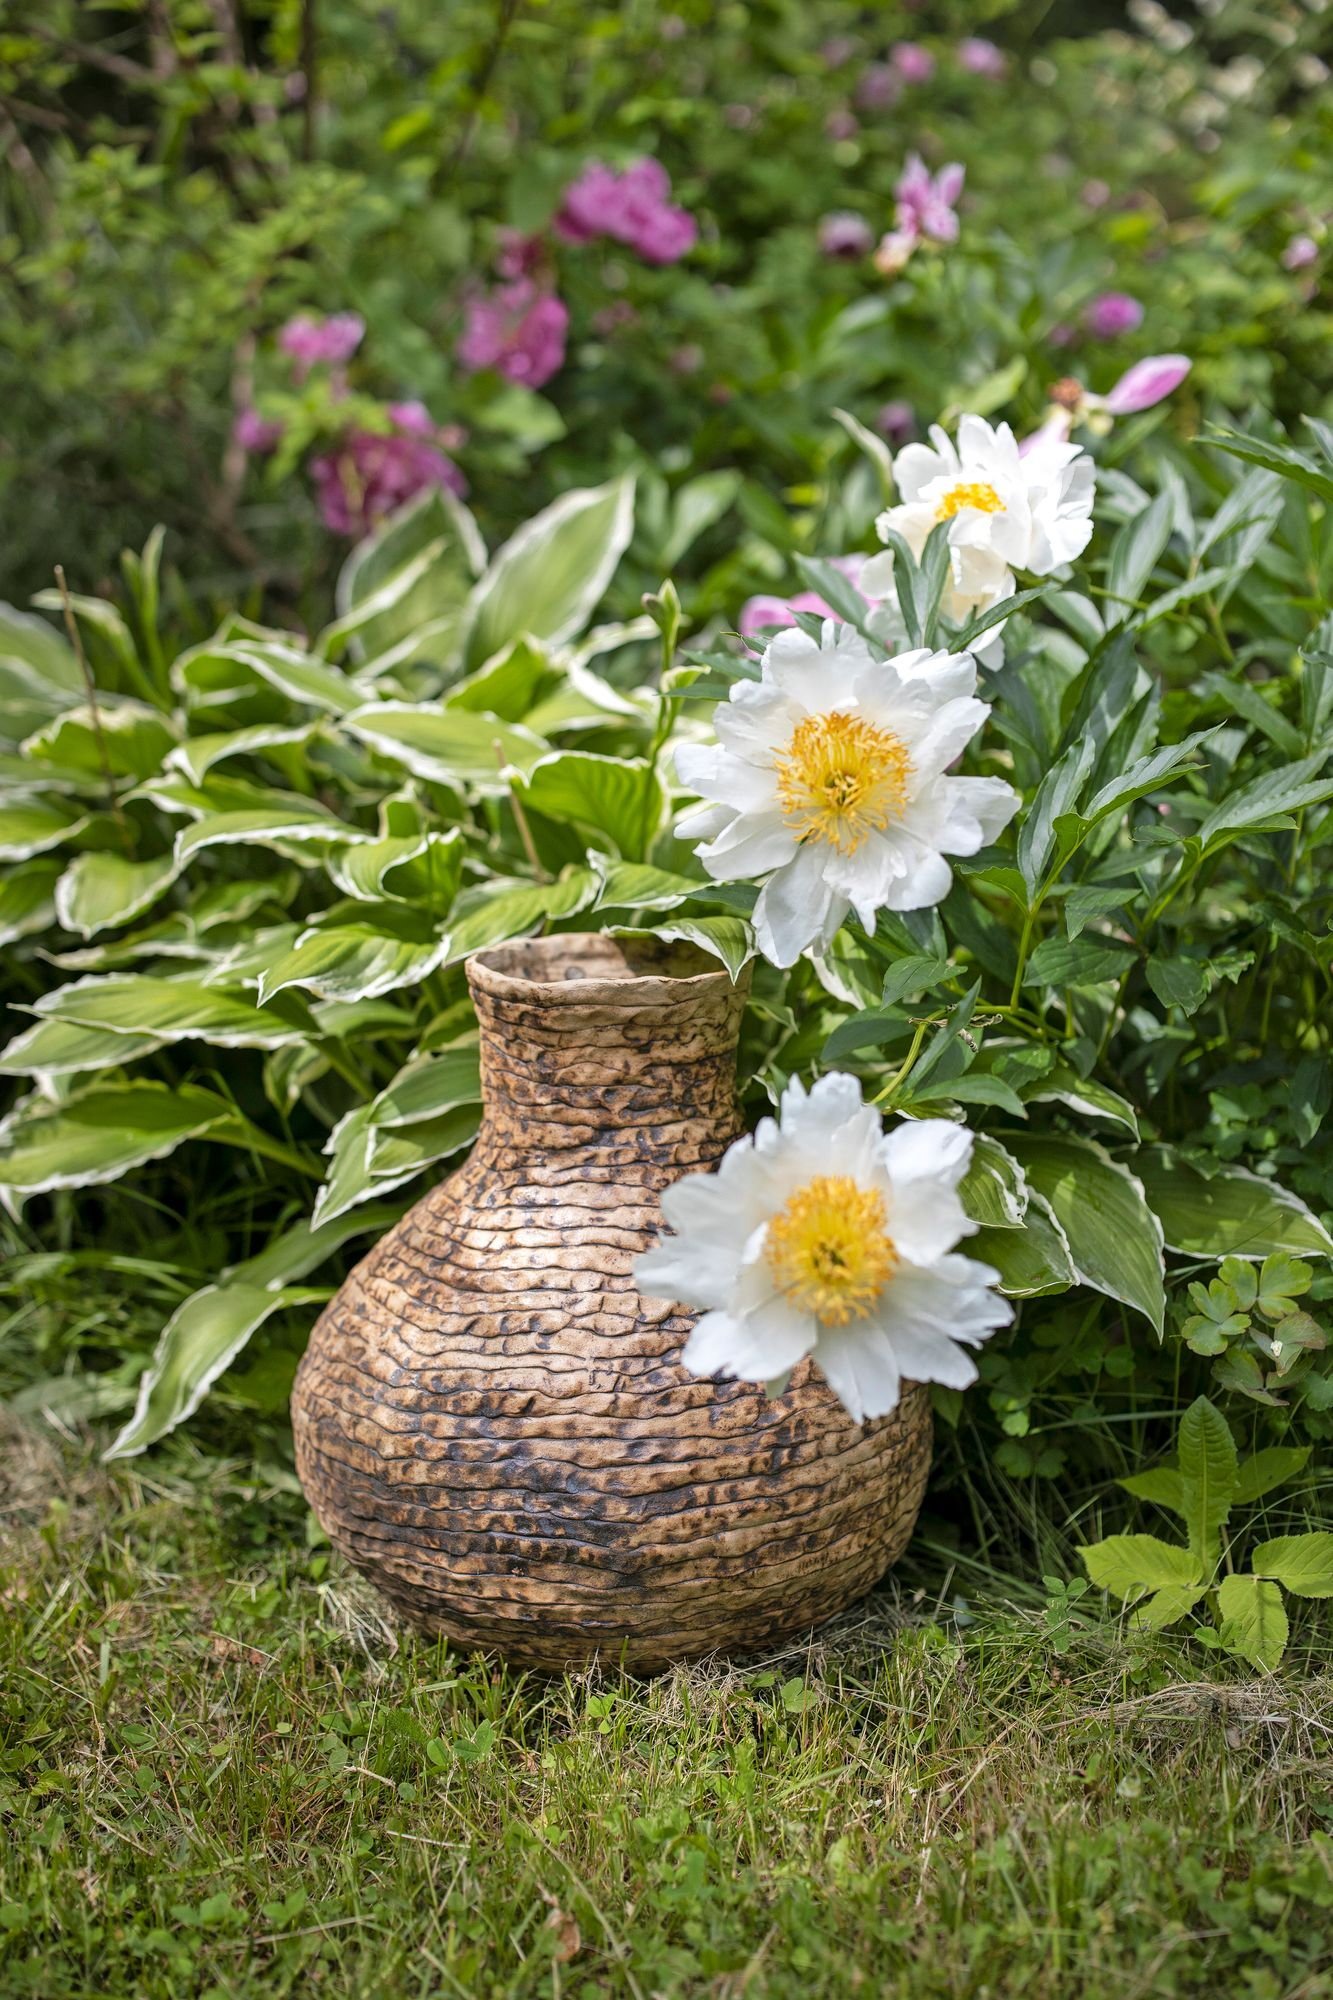 Peonies go well with the abundance of cottage garden style.  Simple peonies stay better upright than multiple varieties.  Pictured is the lush white-leafed peony variety Moon of Nippon.